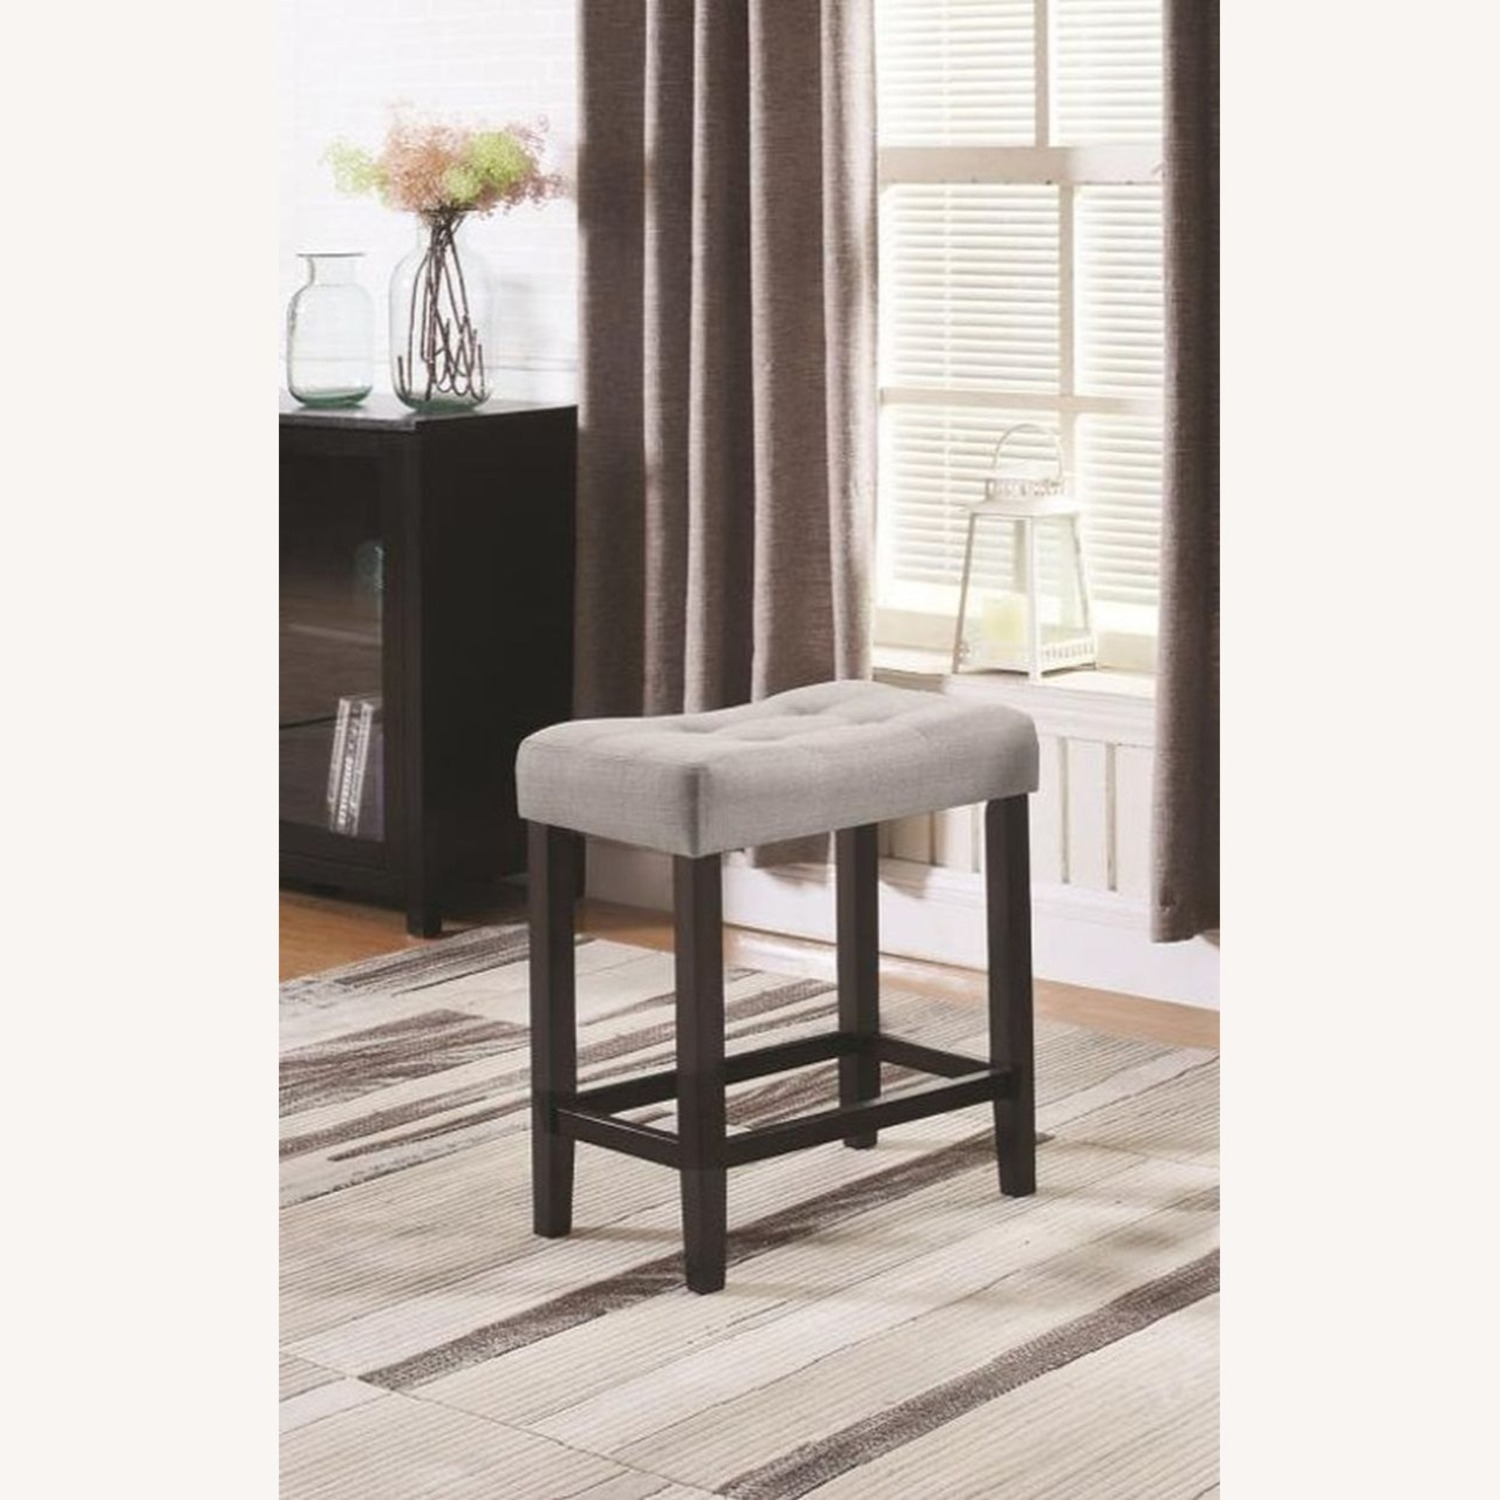 Counter Height Stool In Grey Fabric Tufted Seating - image-3